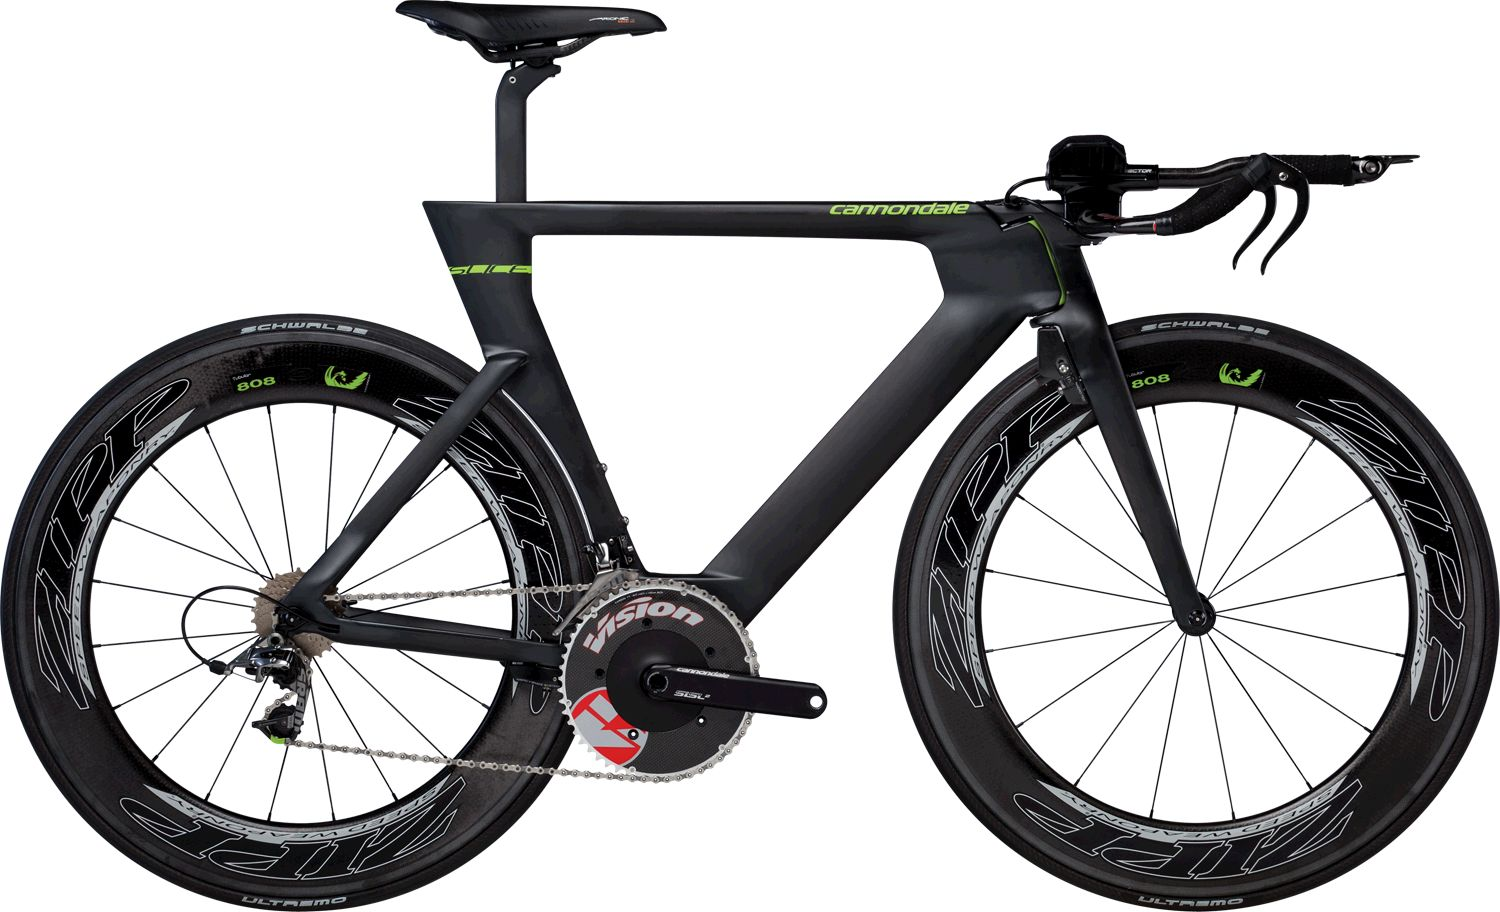 f7e3405db8c Cannondale SLICE RS SRAM RED BLACK INC. 2013 review - The Bike List